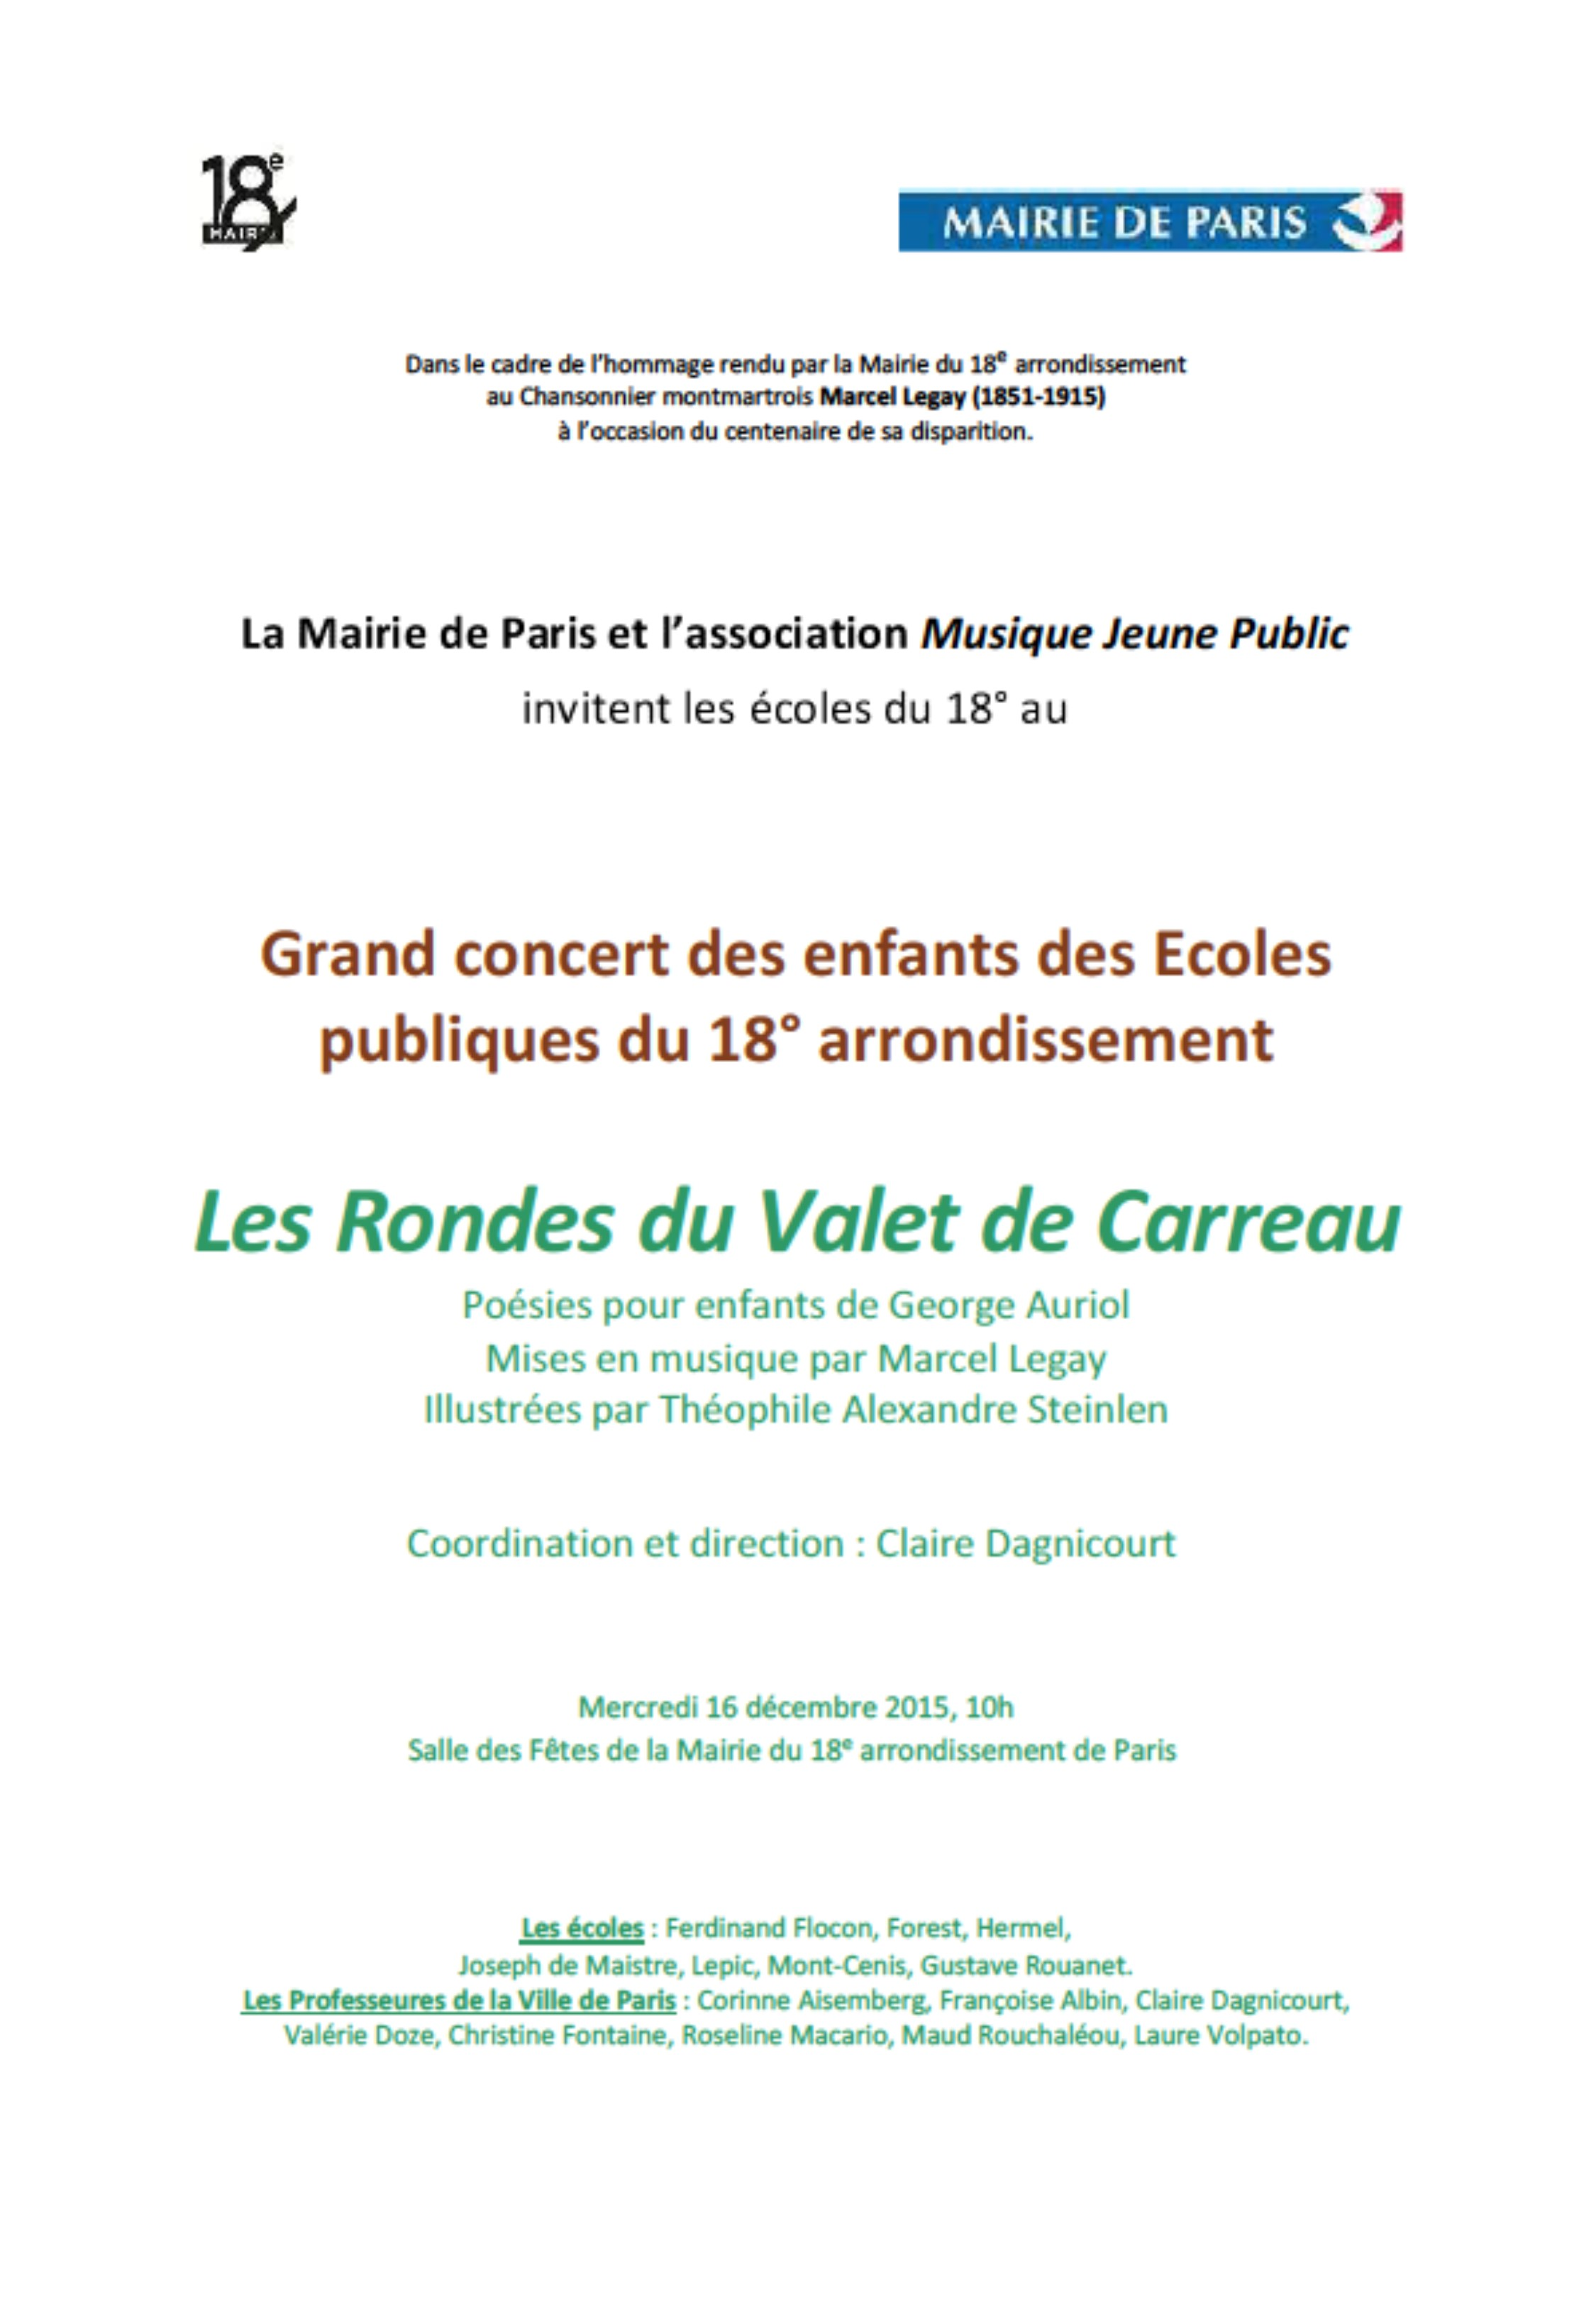 2015-12-16_Annonce_Spectacle Le Valet de Carreau_Mairie du 18e_Paris